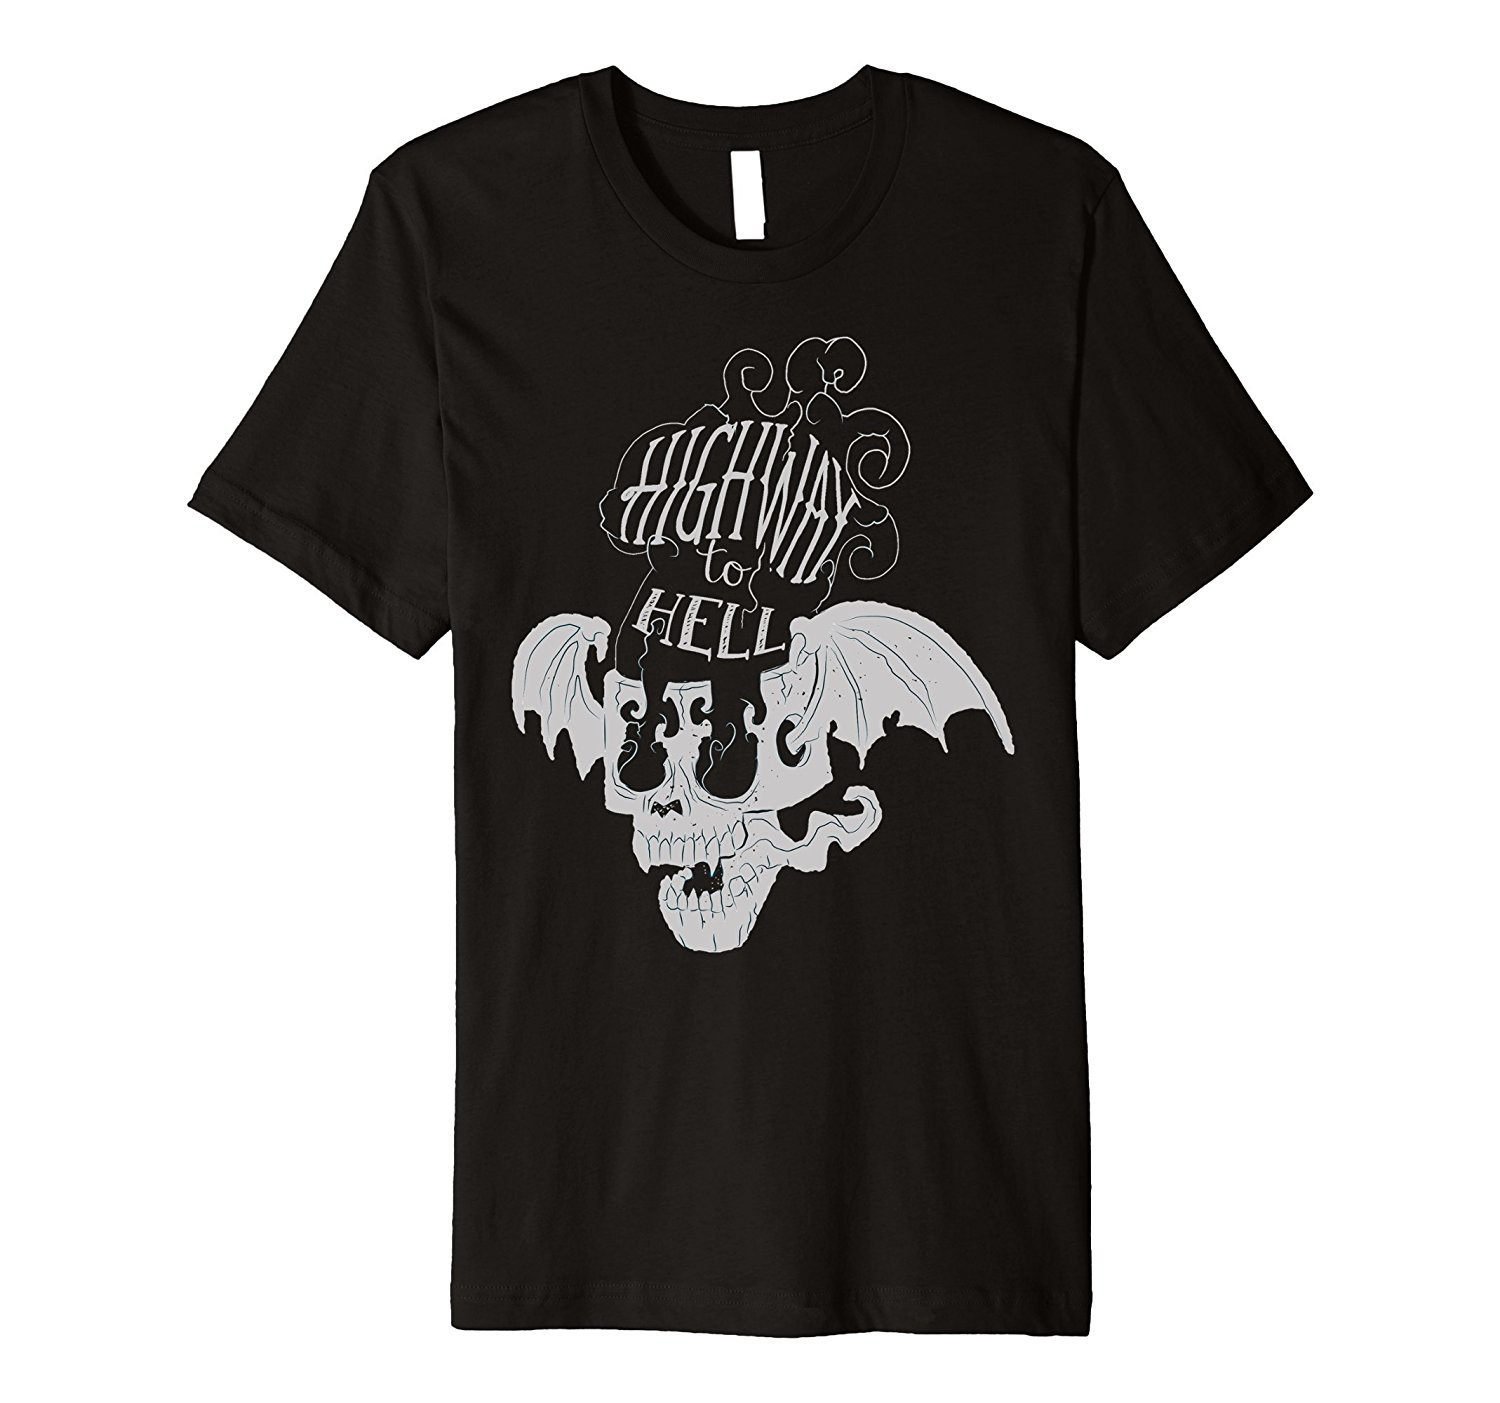 2019 Nieuwe Zomer Mode Mannen T shirt Vintage Schedel Fietsen Rider Tattoo T shirt Casual T shirt in T Shirts from Men 39 s Clothing